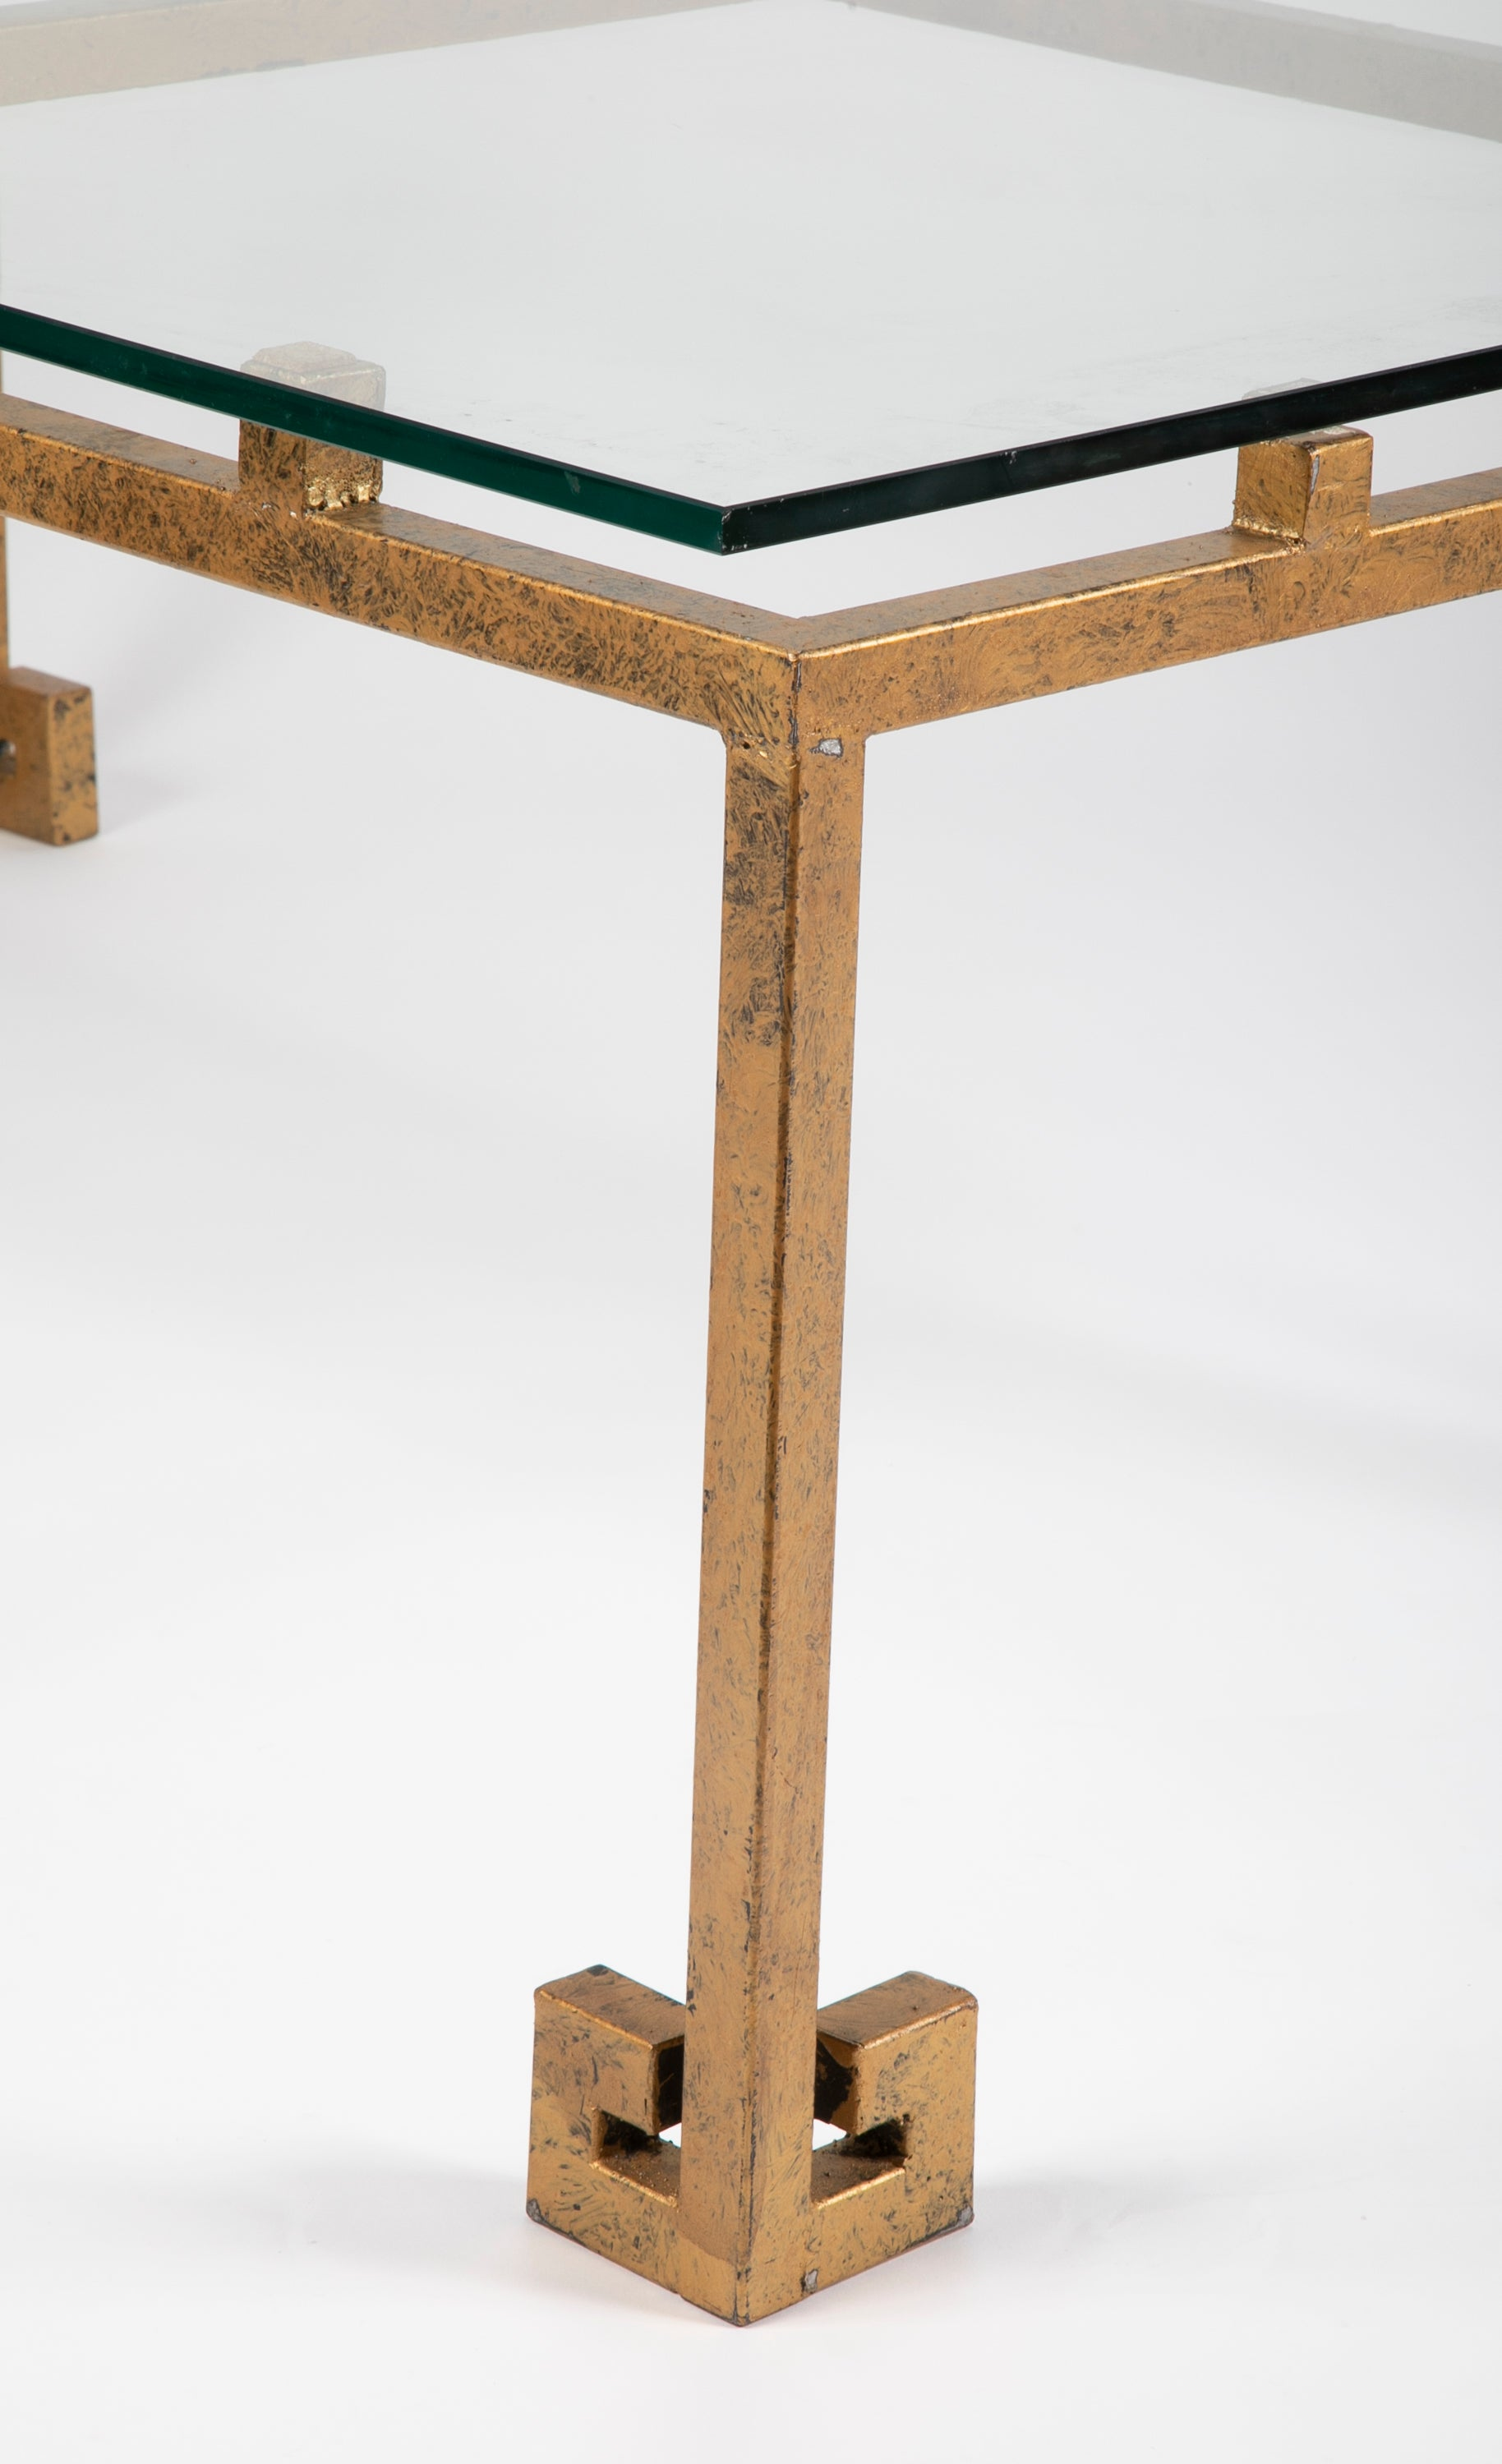 MId-Century Patinated Metal Greek Key Form Low Table